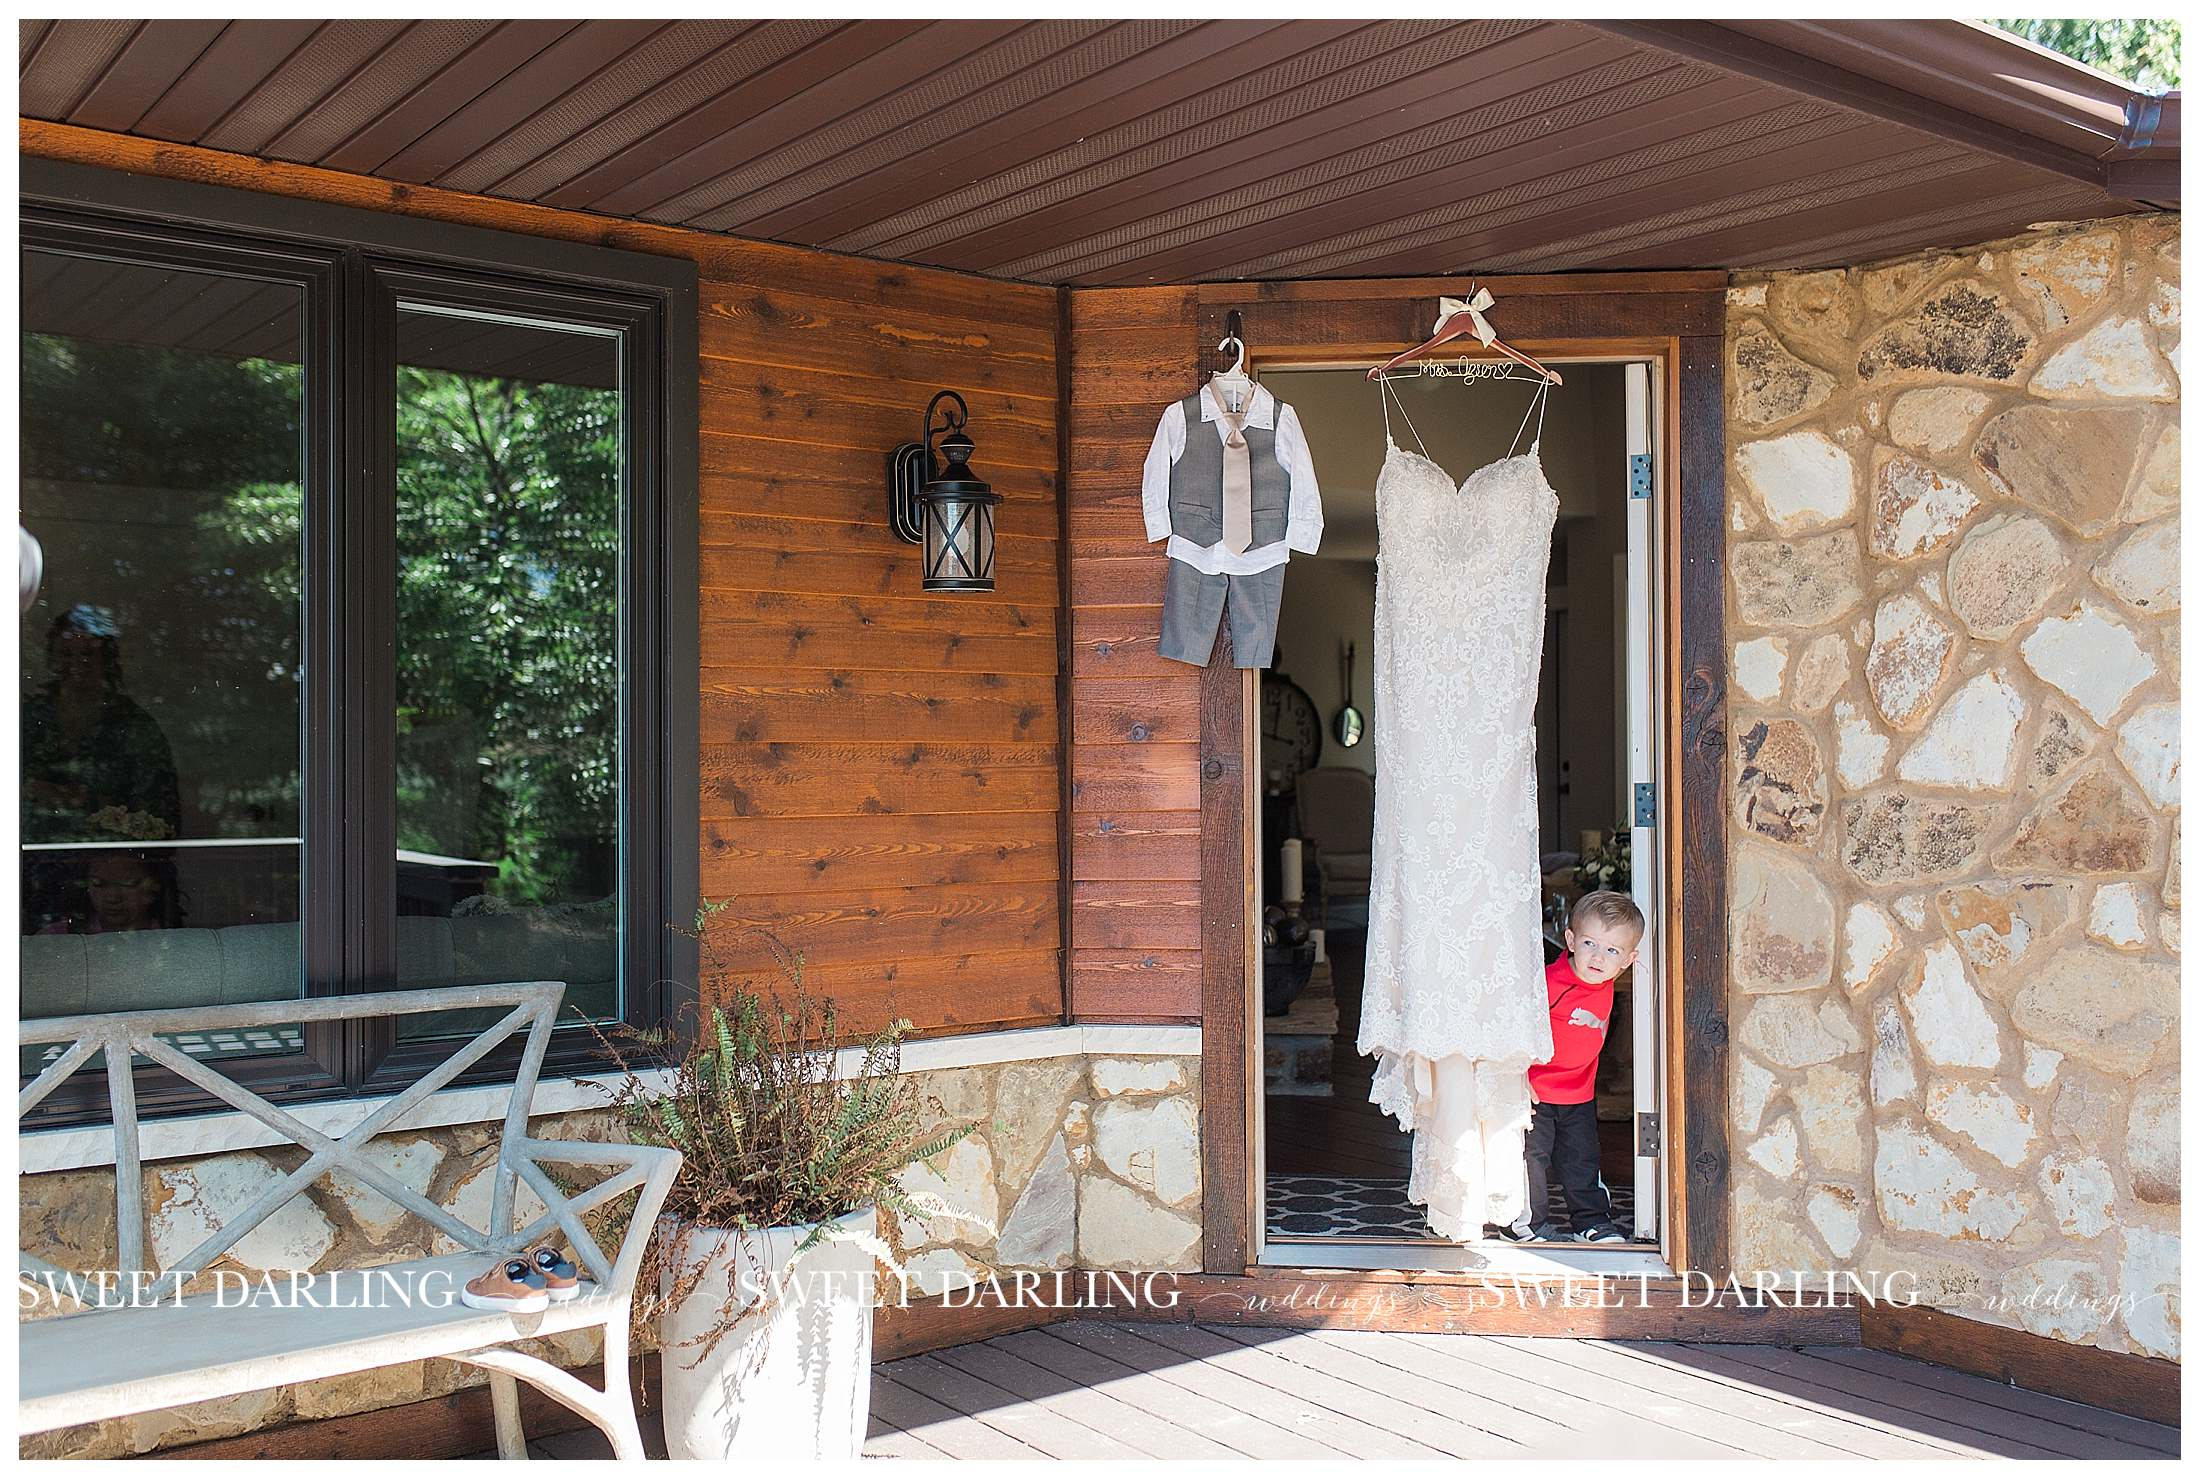 Bride's dress hanging with ring bearer's outfit